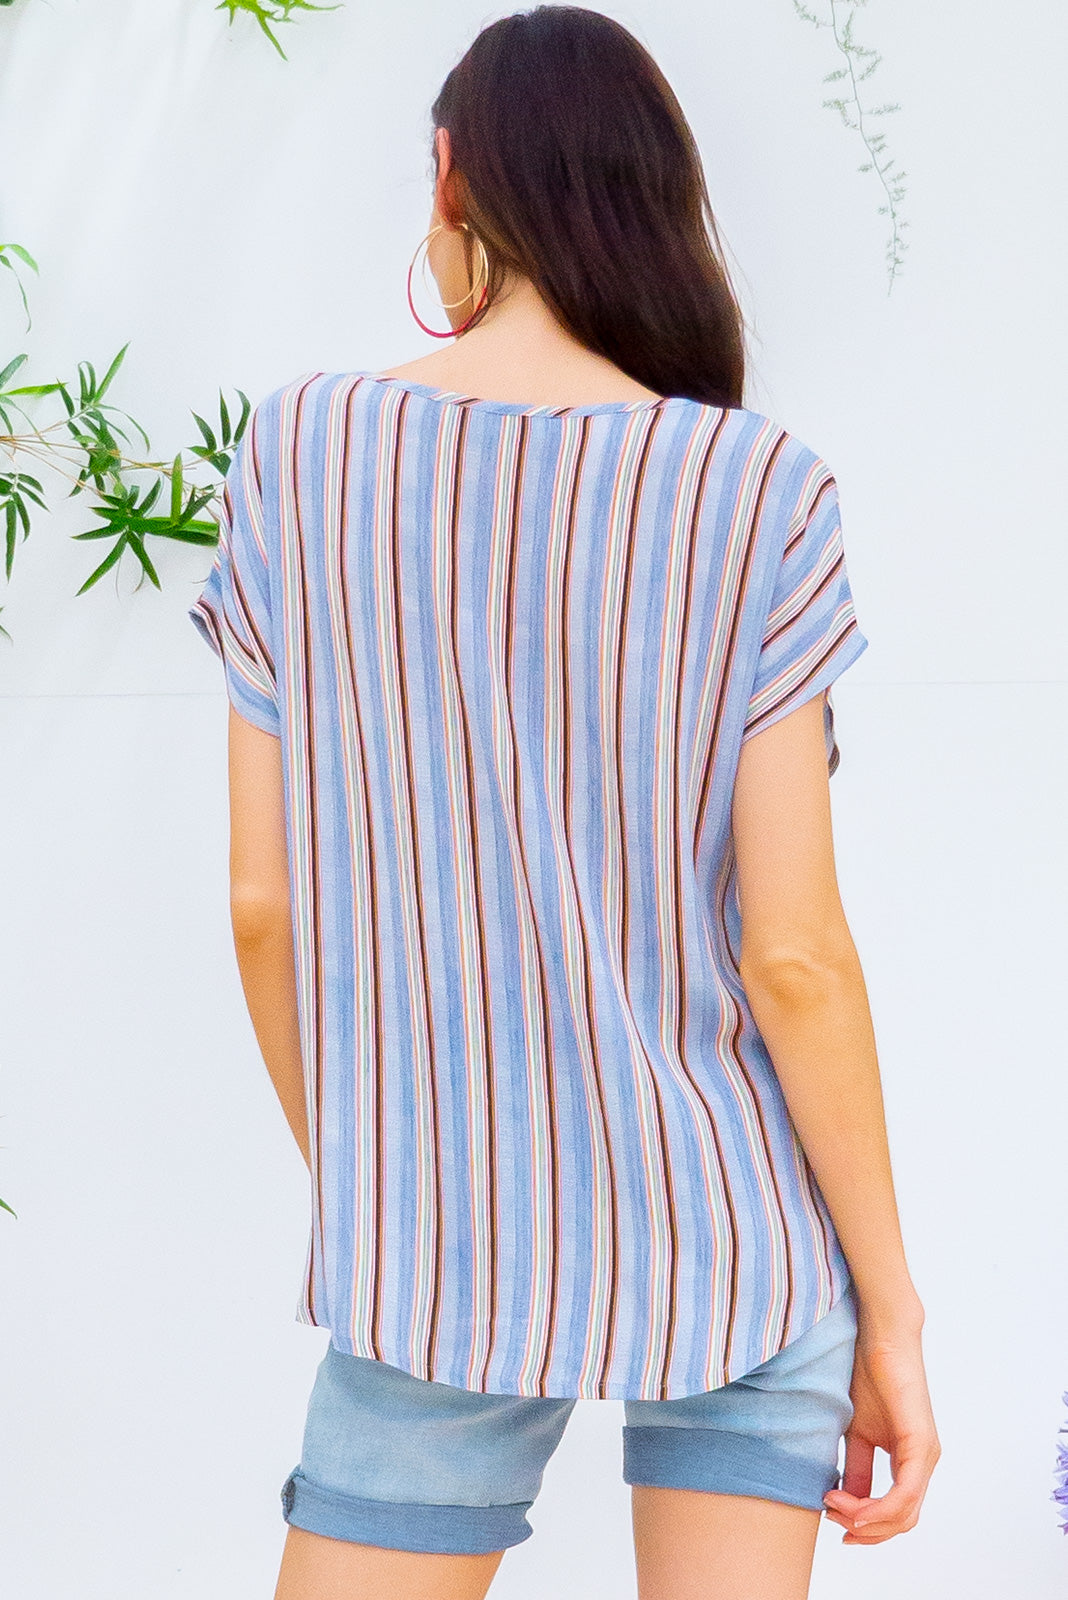 Sugar High Oceania Stripe crinkle rayon relaxed fit longline boho top in a cool toned vertical stripe print